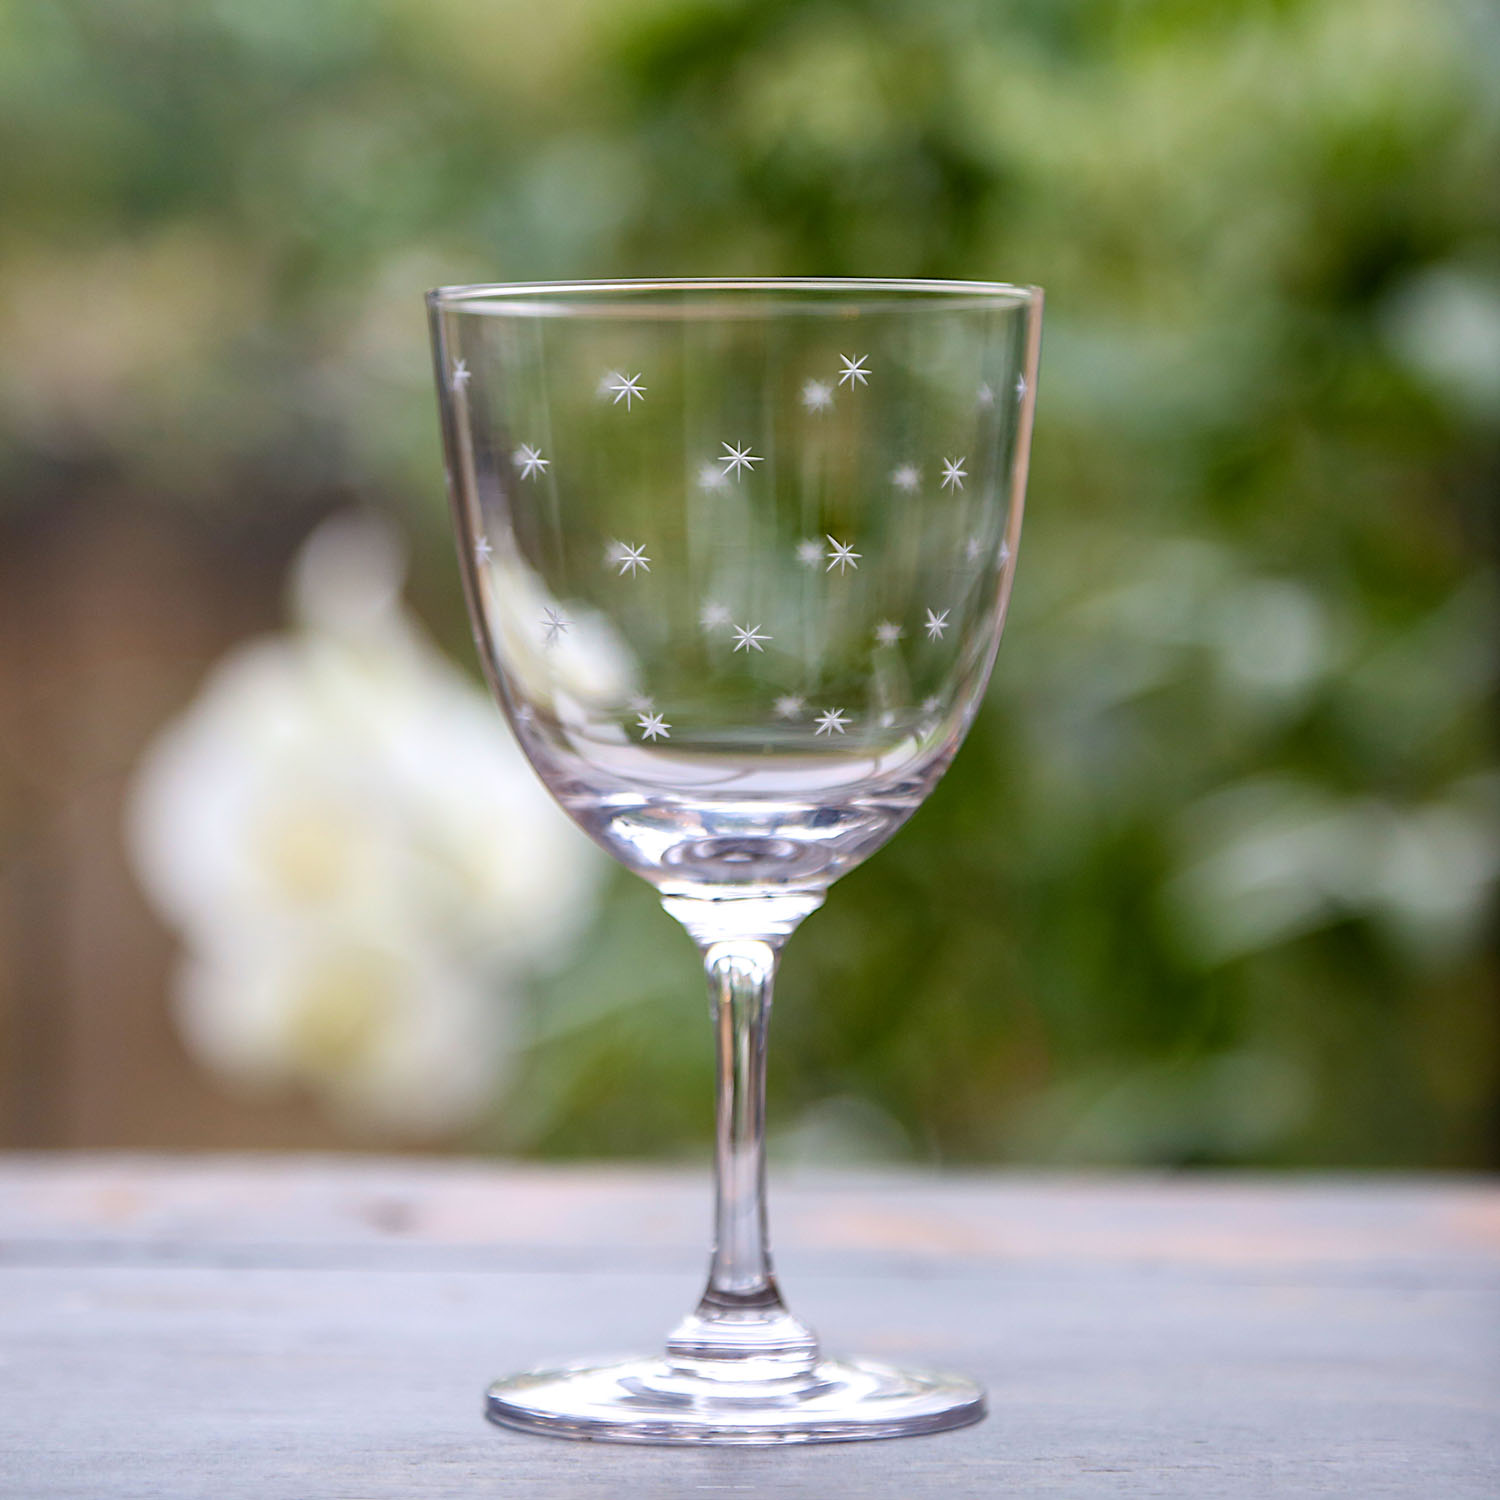 WINE GLASSES   A traditional bowl shape, with long, fine stem, it can be used for red or white wine.